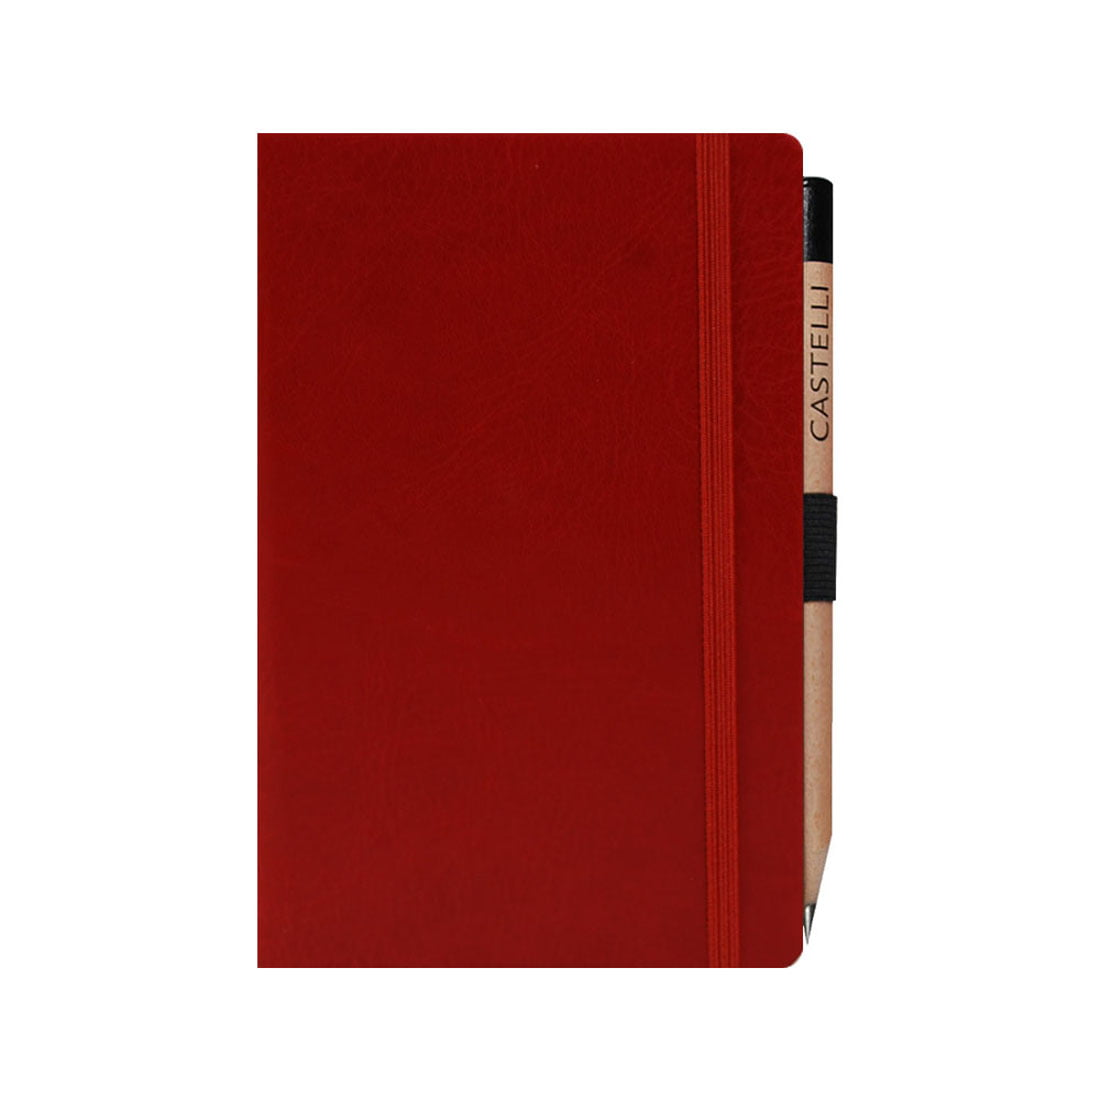 Pocket notebook with a high quality retro pencil included.